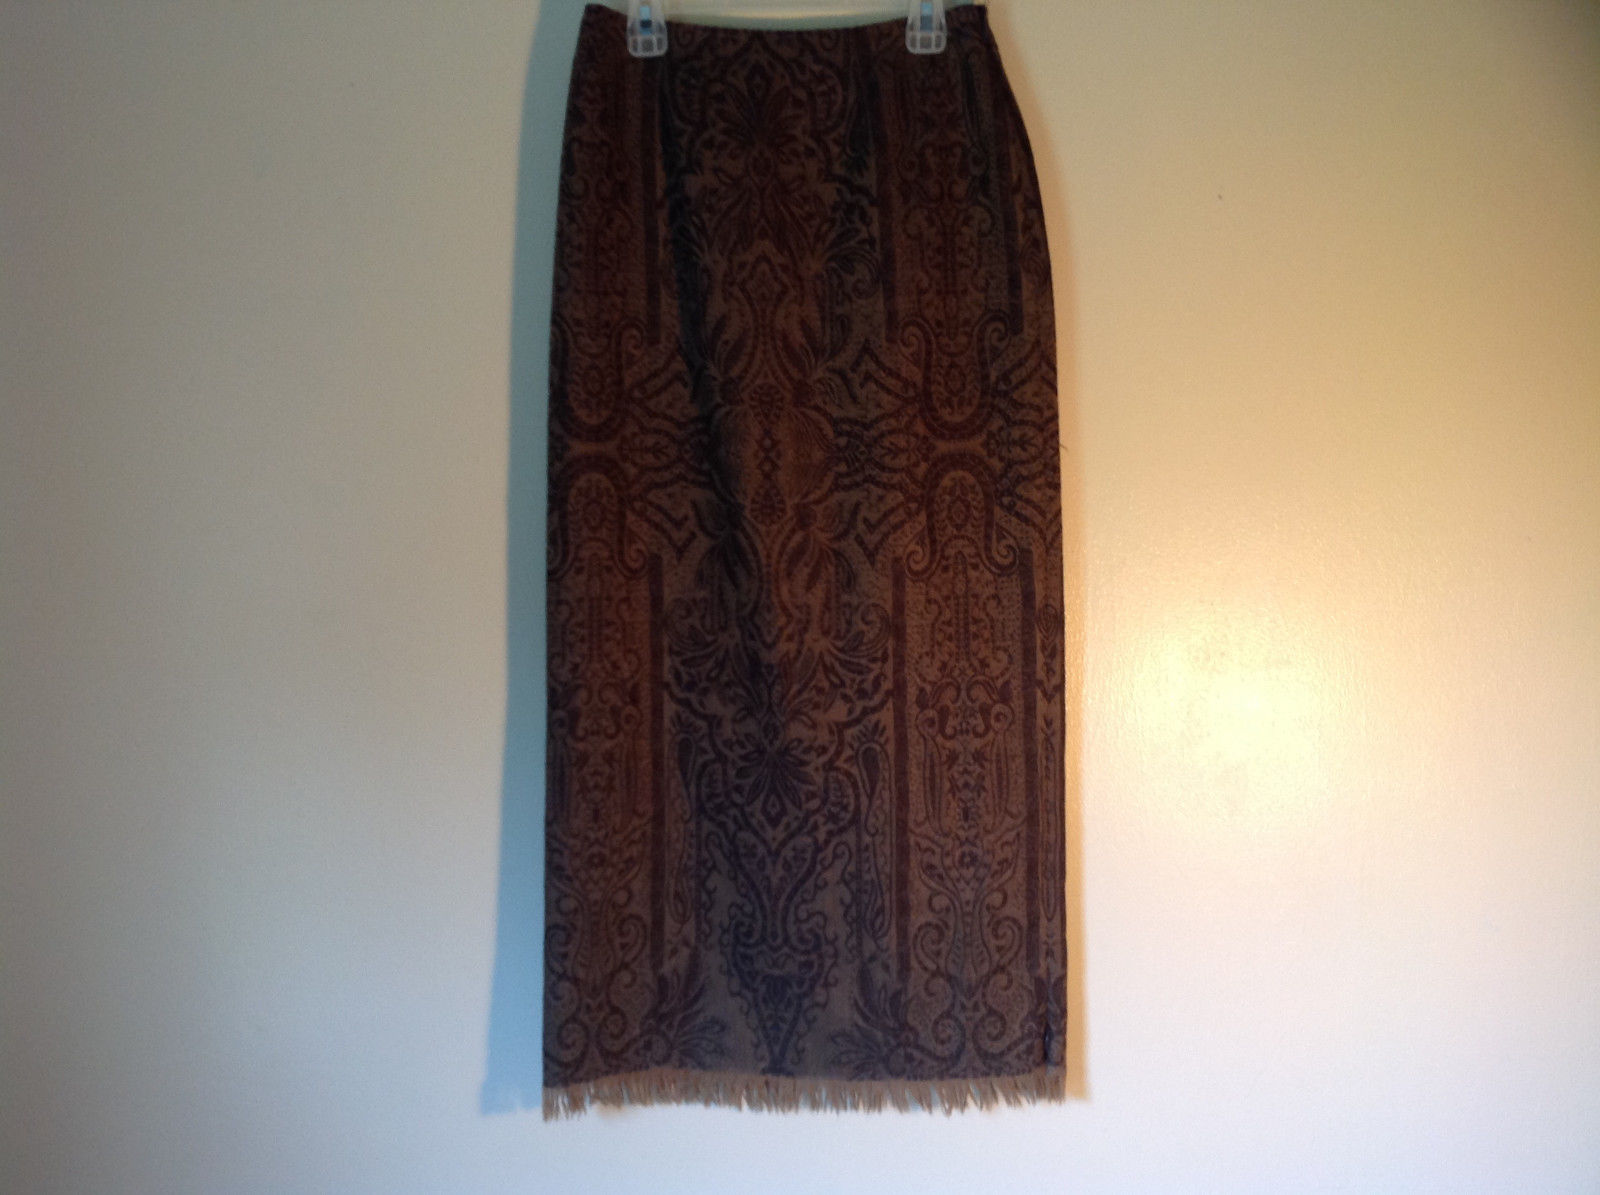 Brown Floral Vintage Look Skirt by Dana Buchman Size 2 Petite 100 Percent Wool